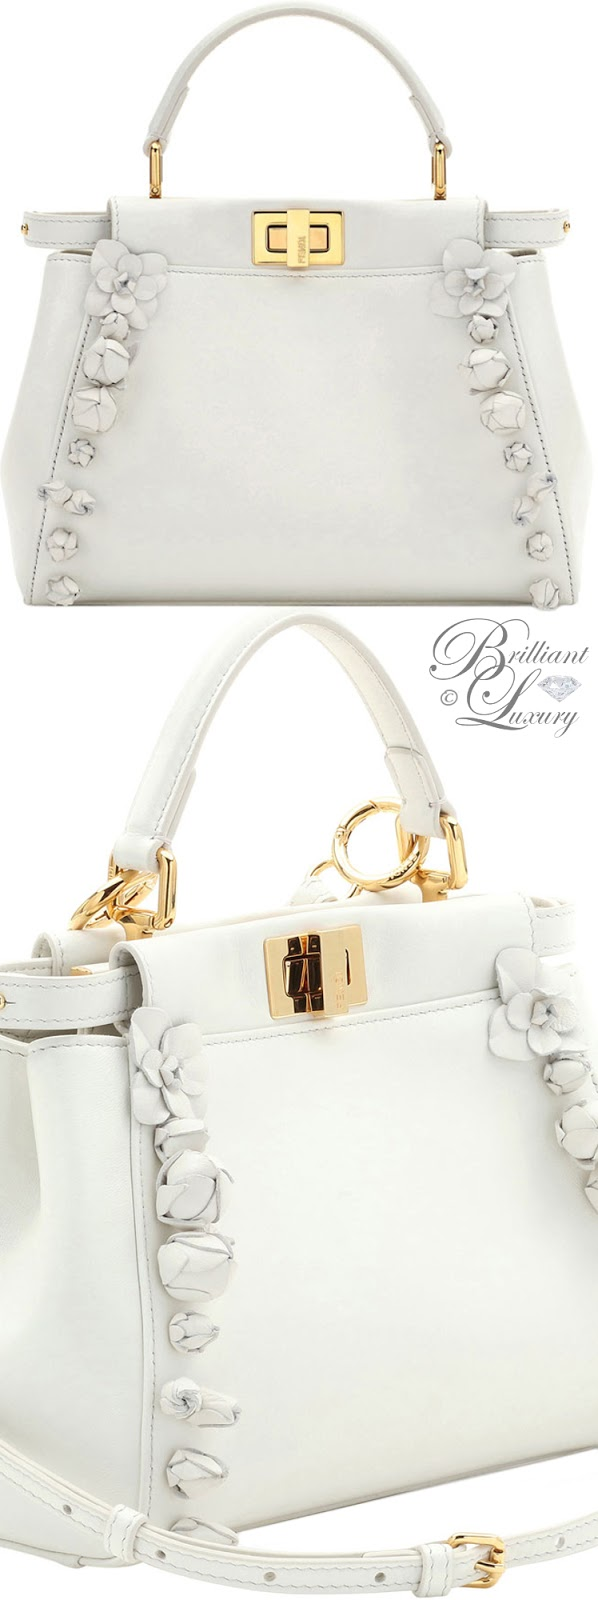 Brilliant Luxury  ♦Fendi Mini Peekaboo Floral-Embellished Satchel Bag #white